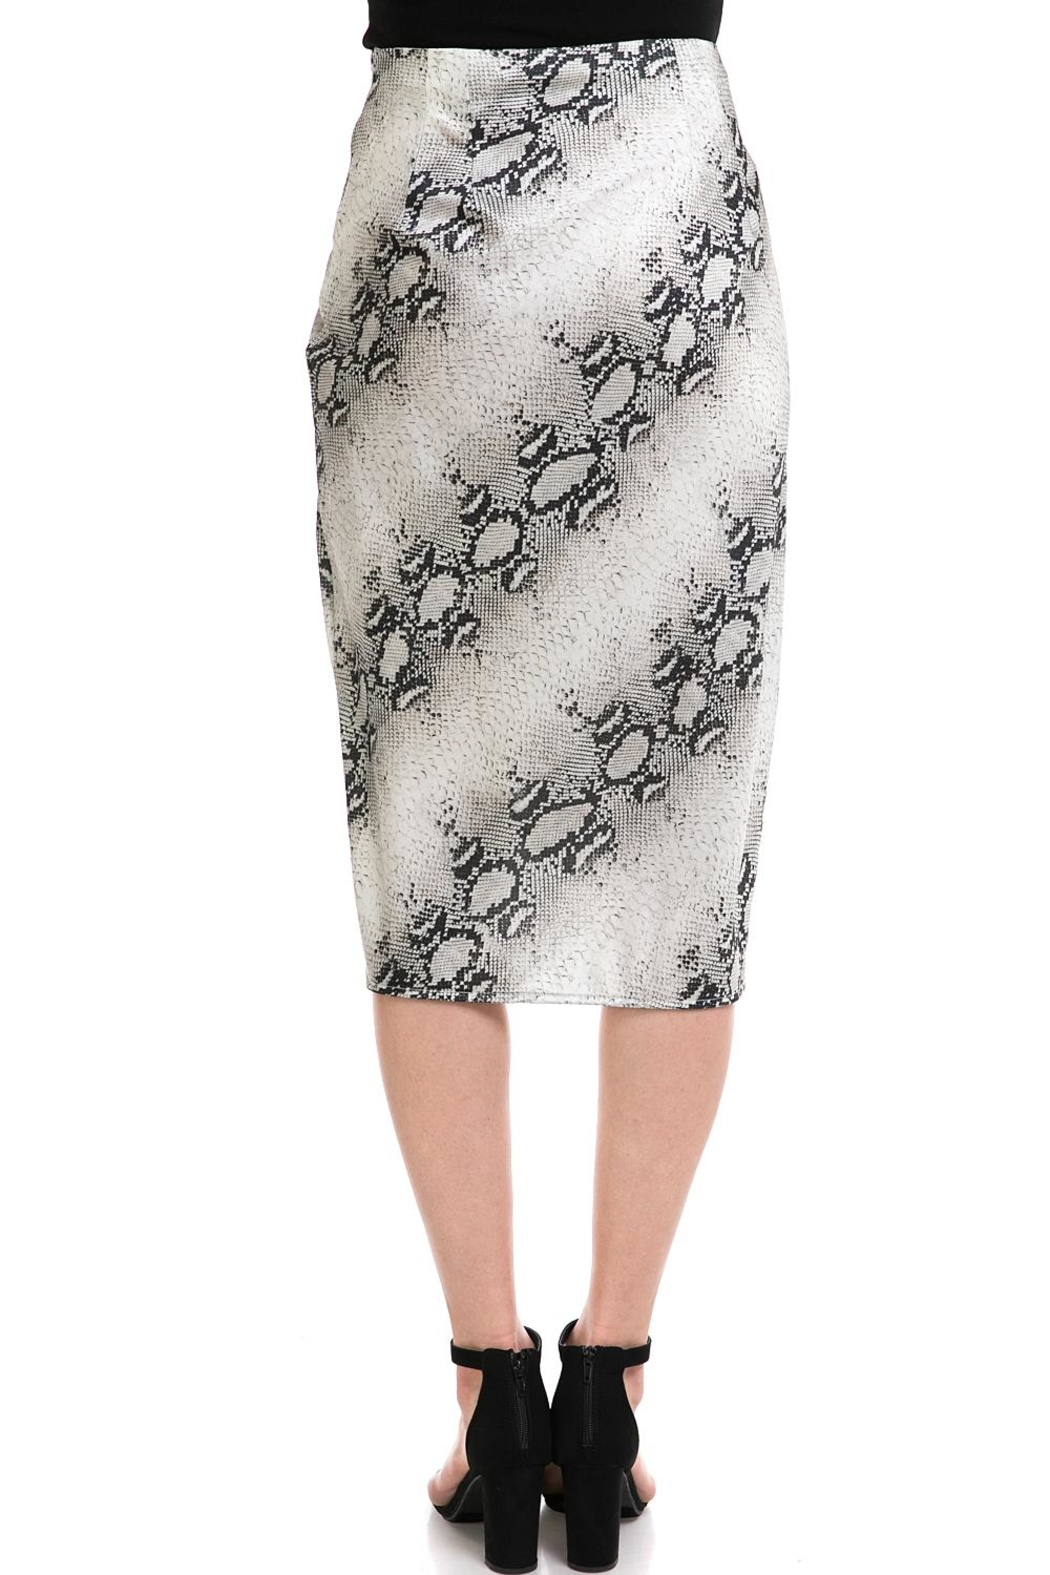 dress forum Snake-Print Overwrap Skirt - Back Cropped Image